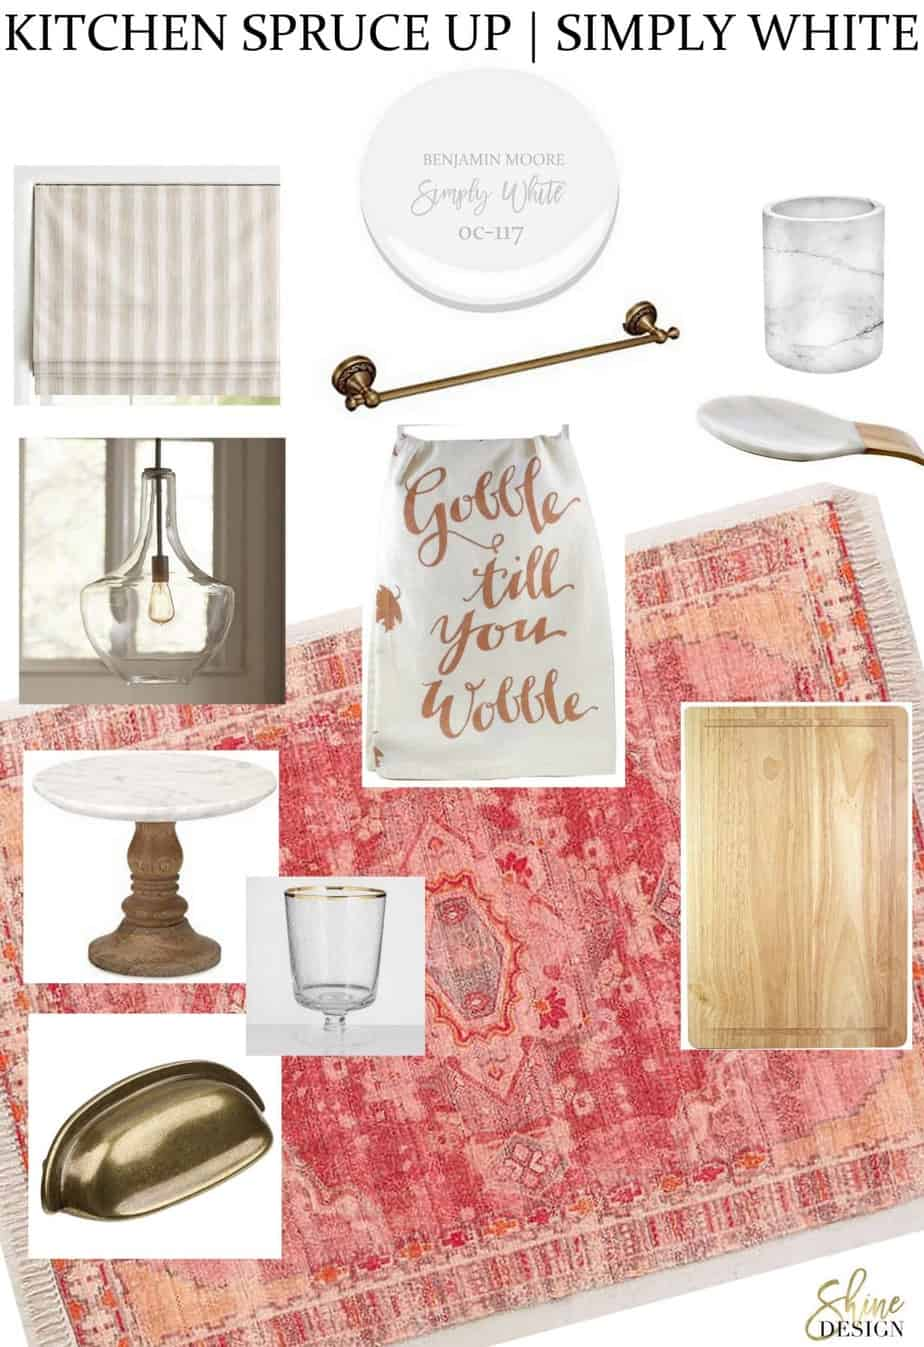 Ideas to freshen up a kitchen before the holiday season.